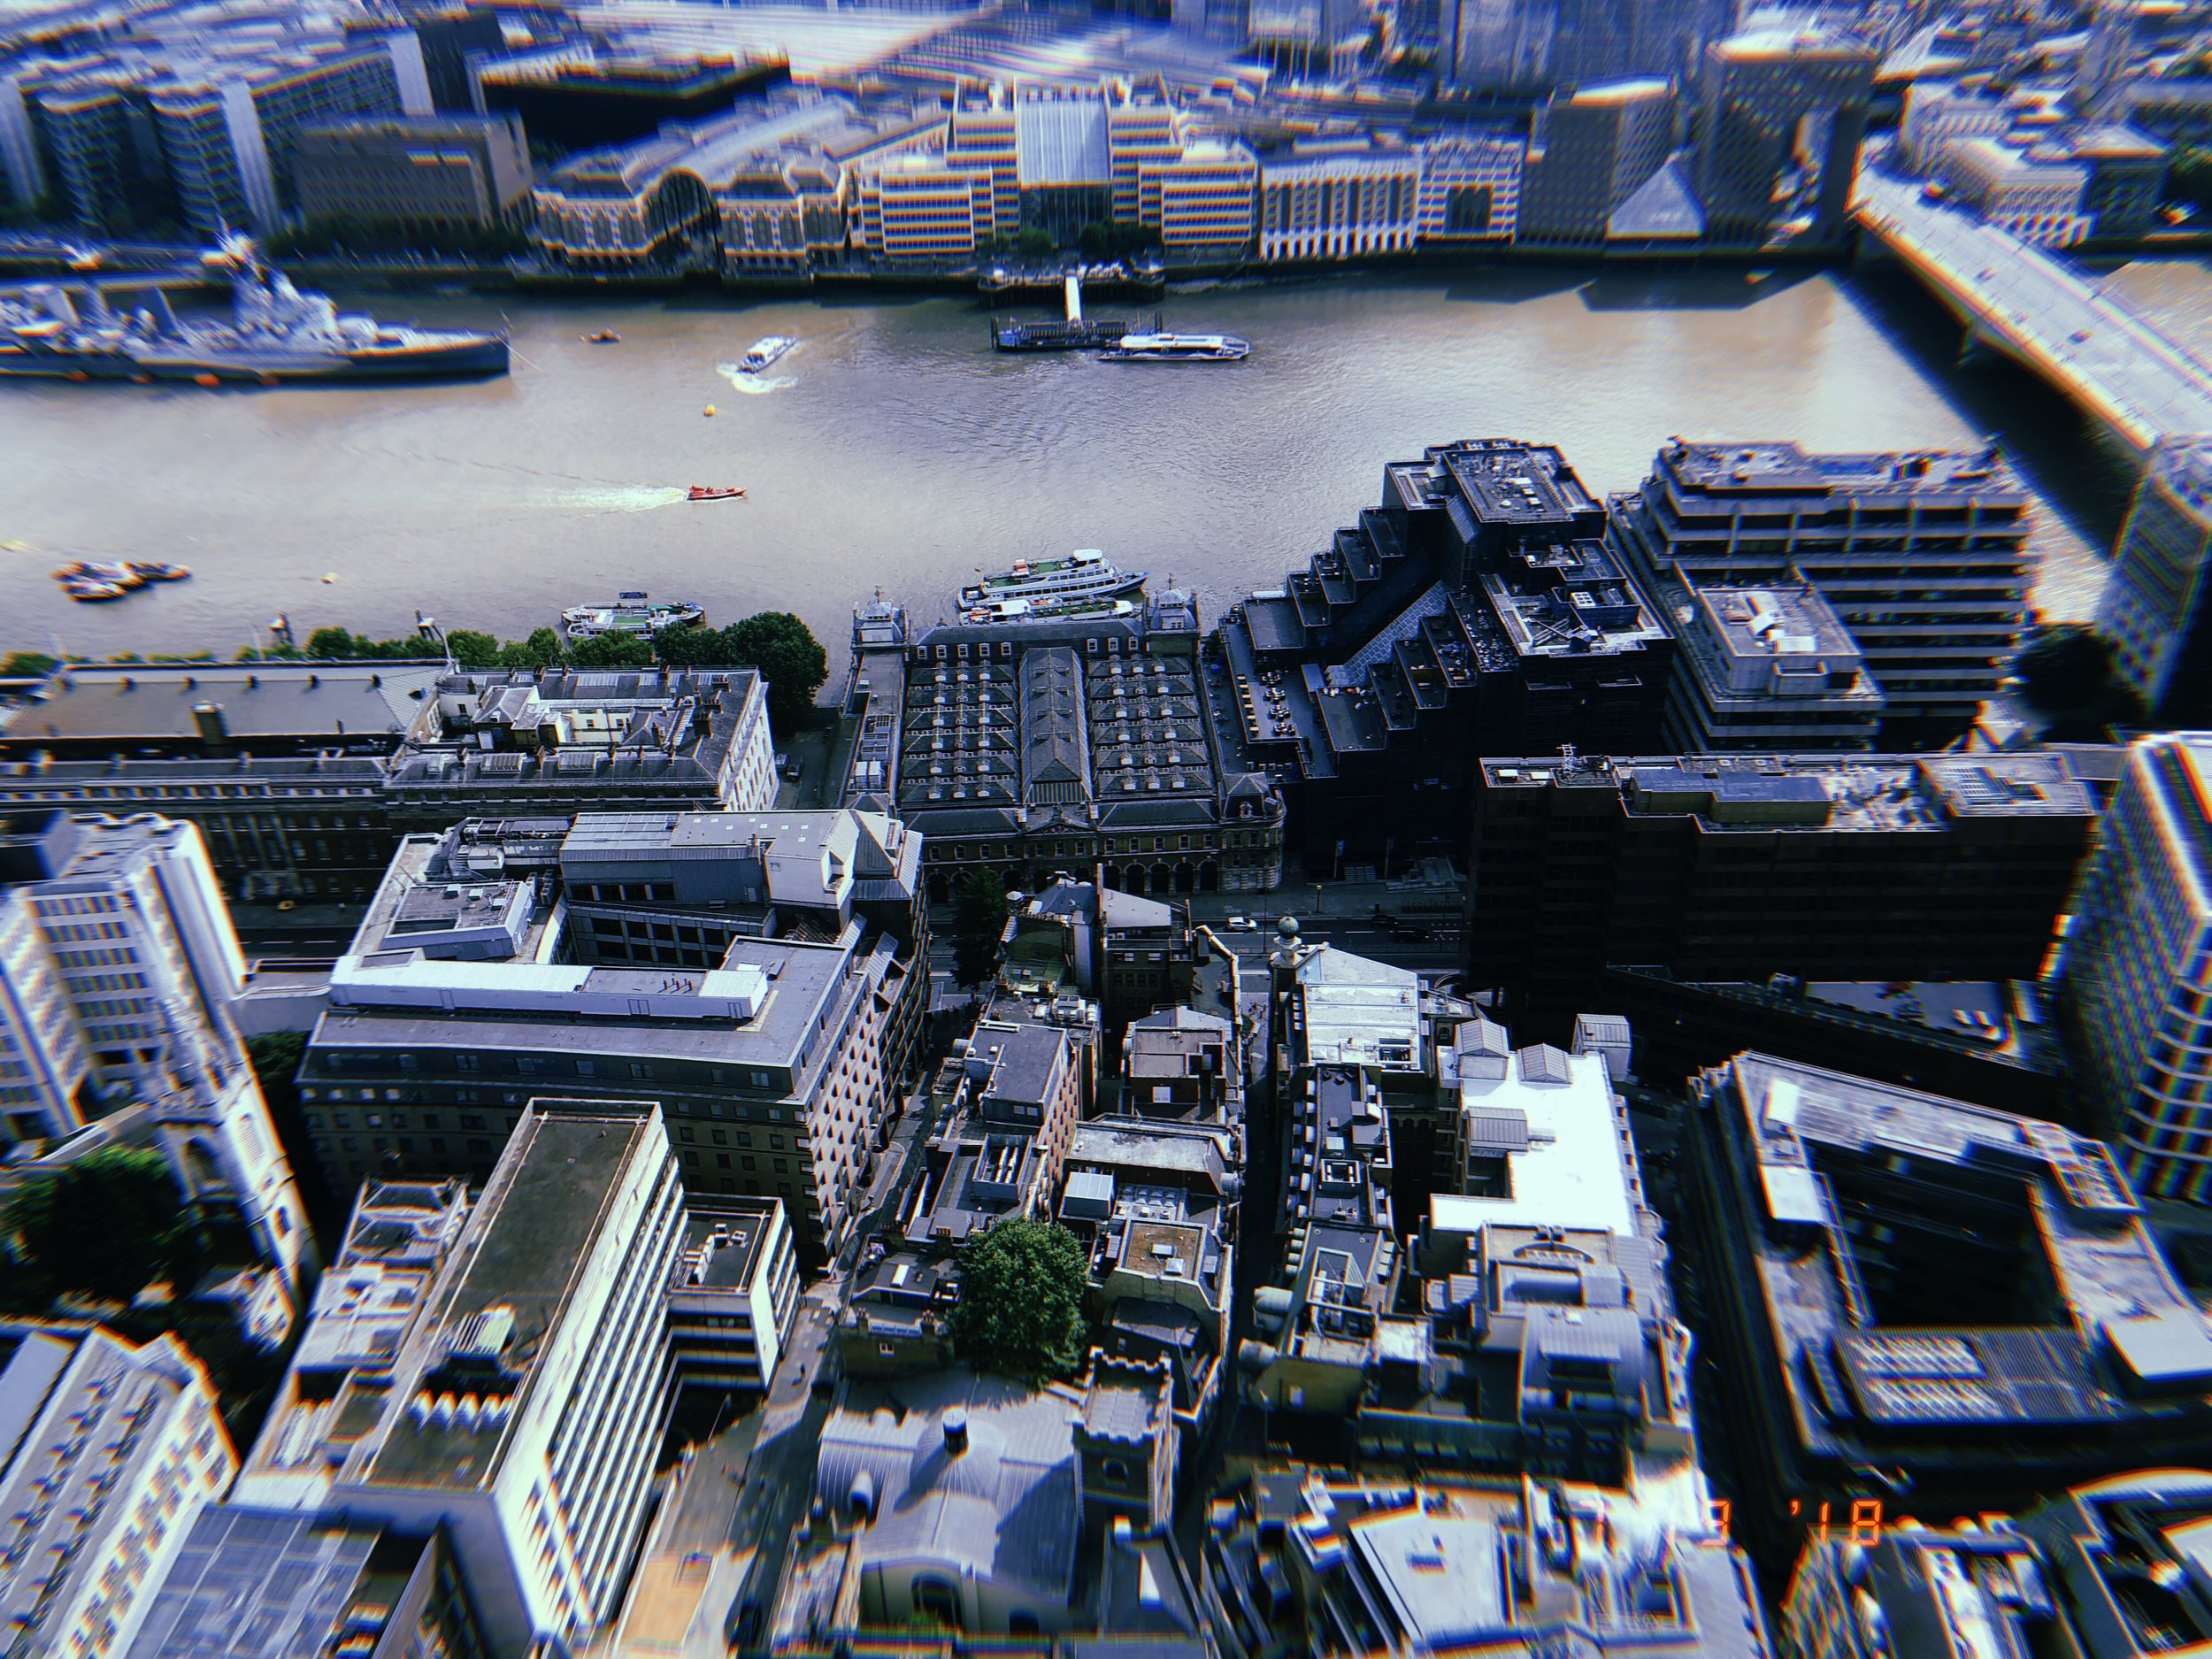 River Thames from 35 Stories Up